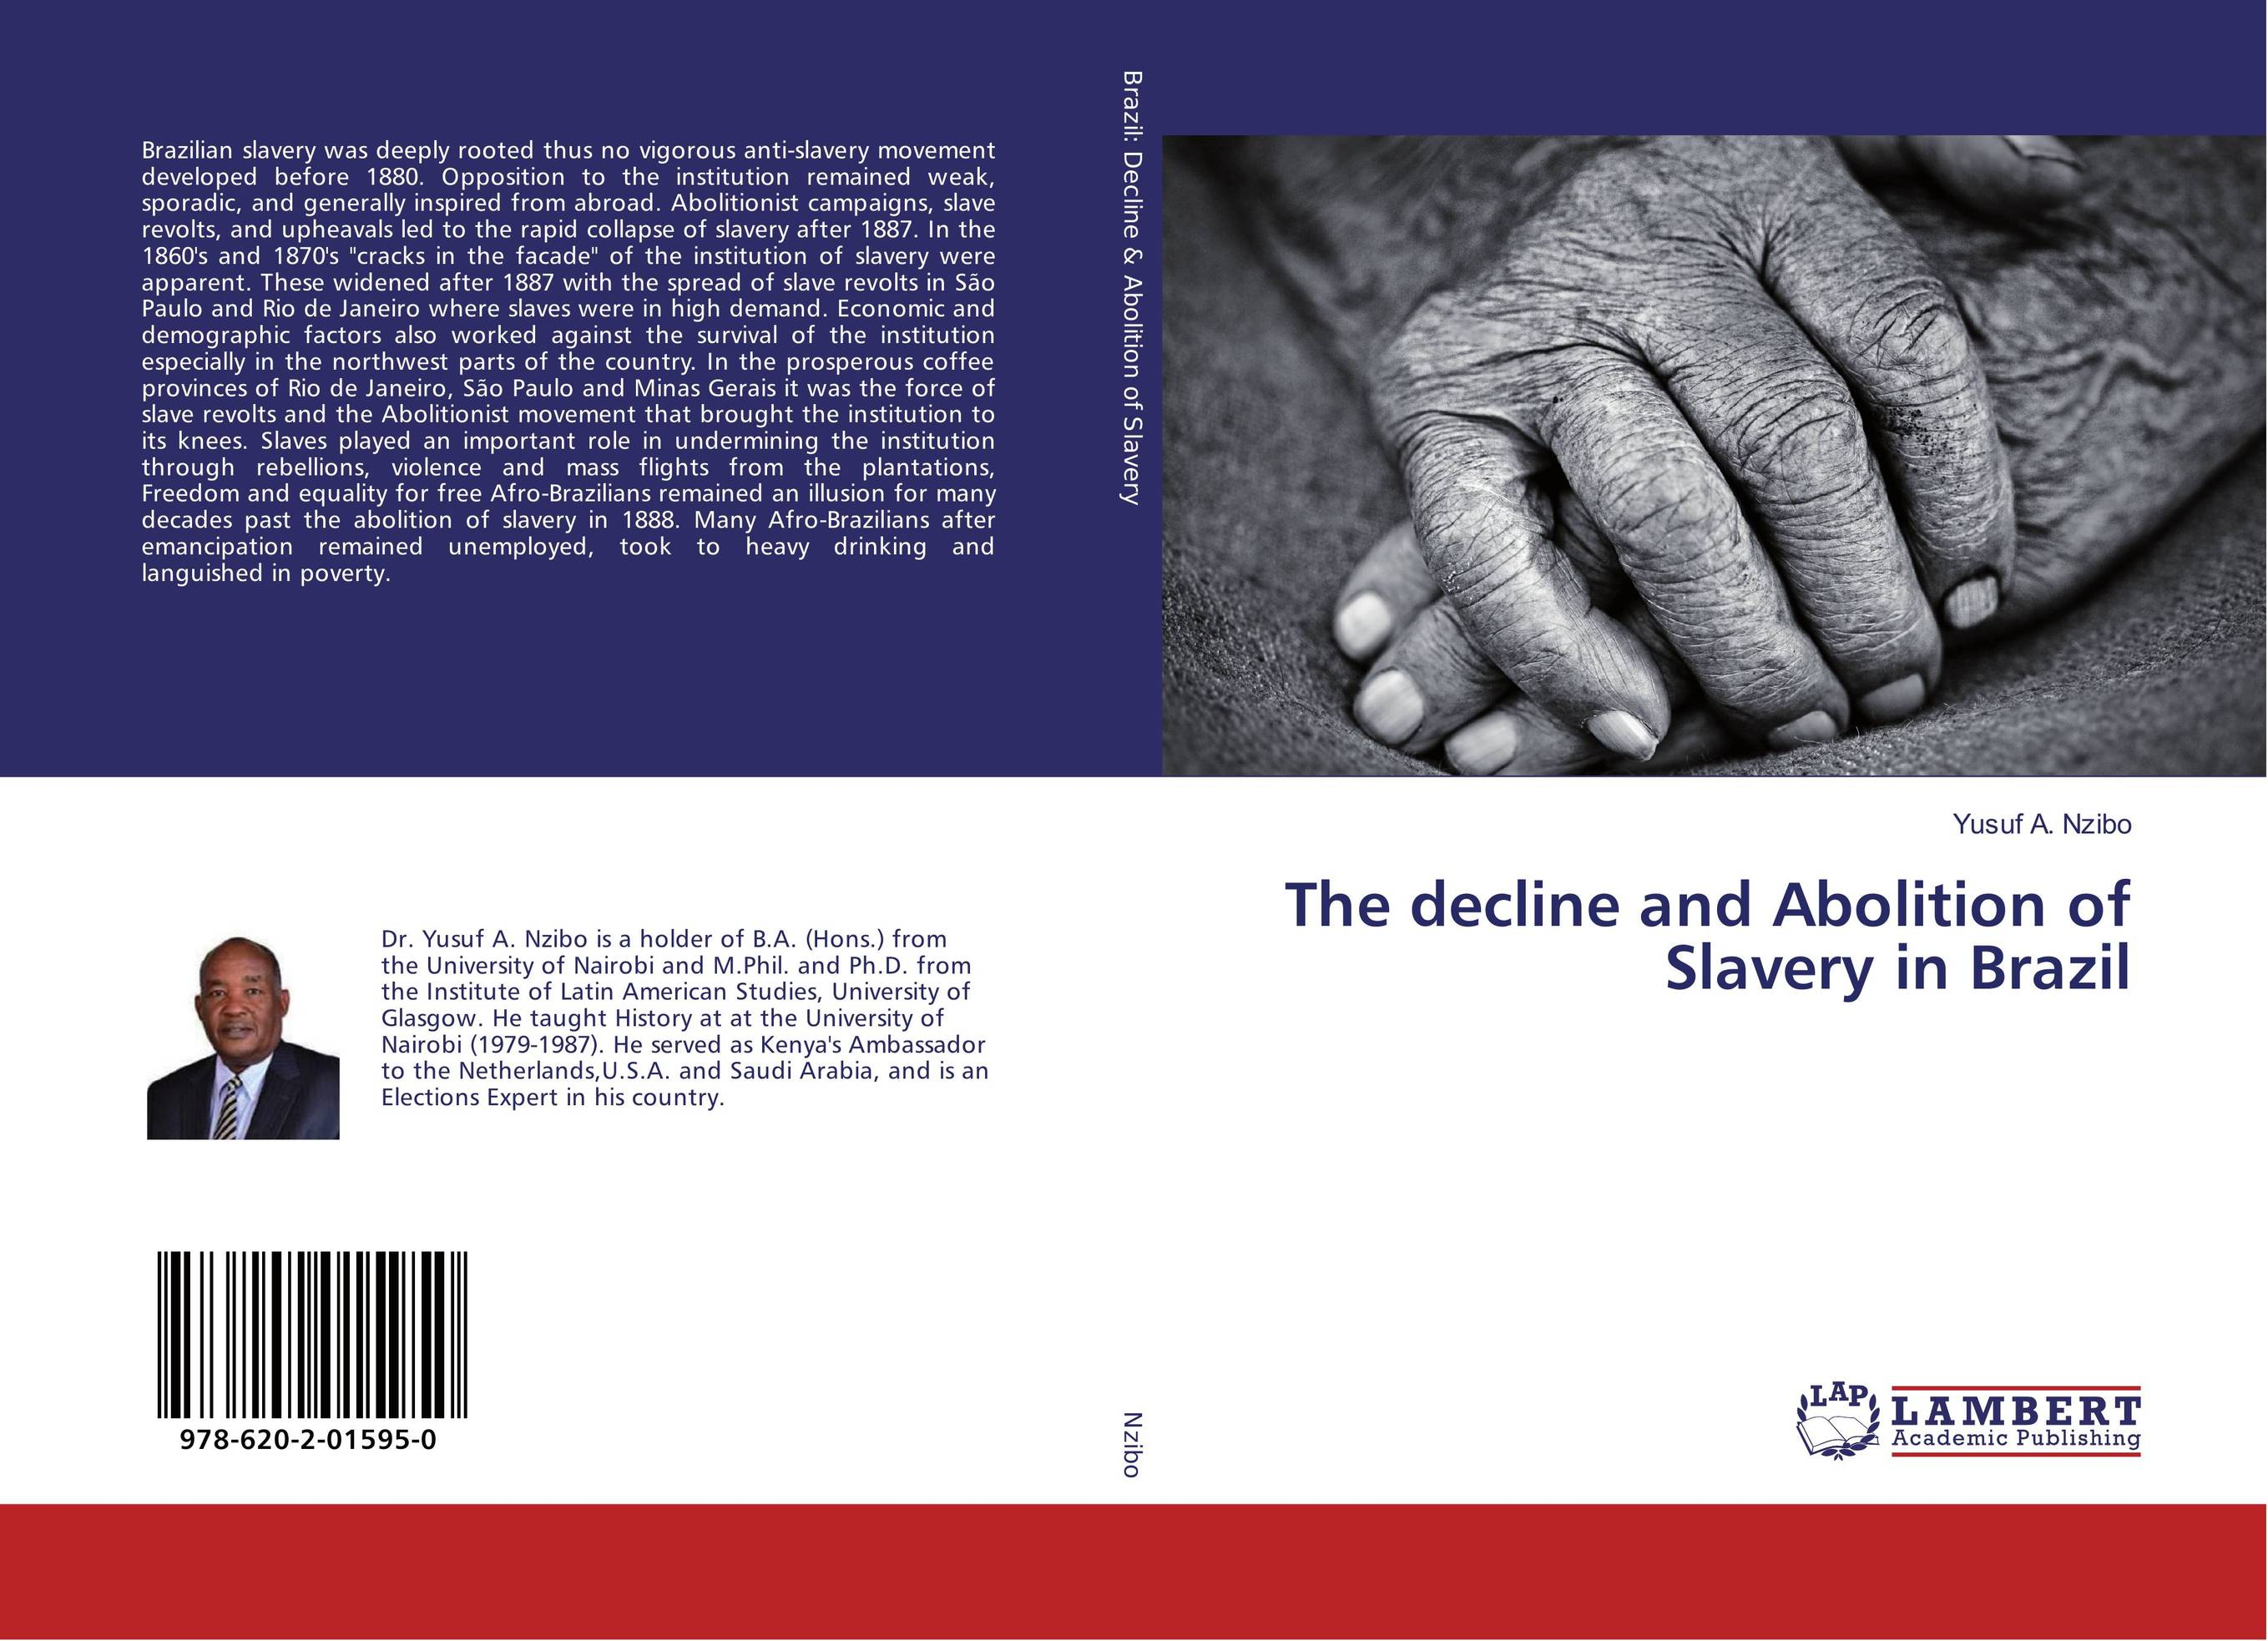 decline thesis slavery With following keyword decline thesis slavery since econocide thesis of british slavery by following author seymour drescher.